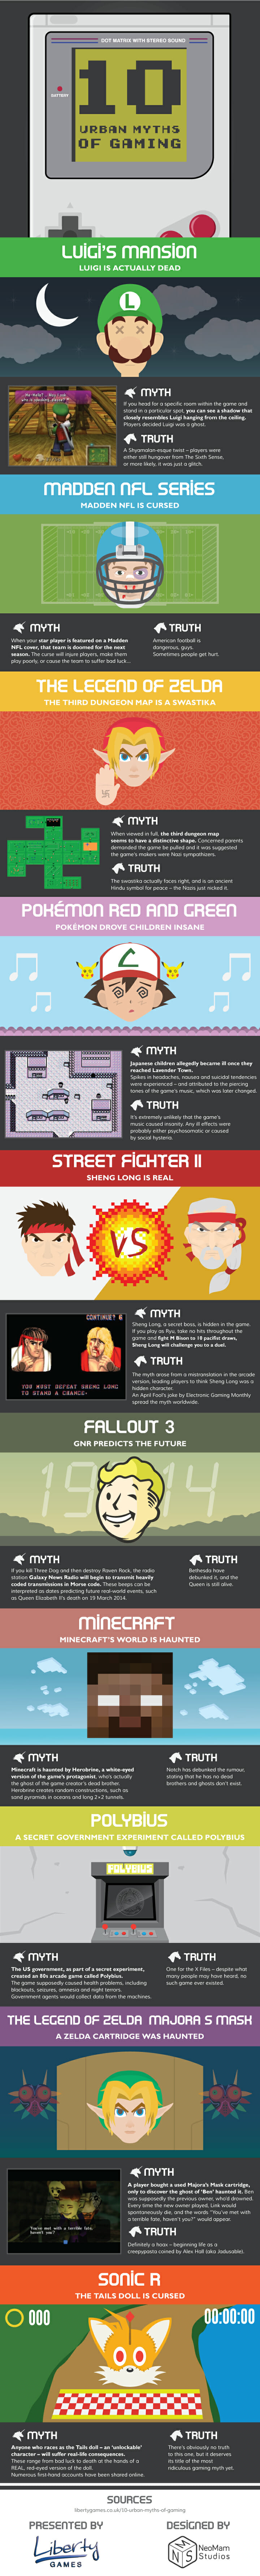 10-myths-of-gaming